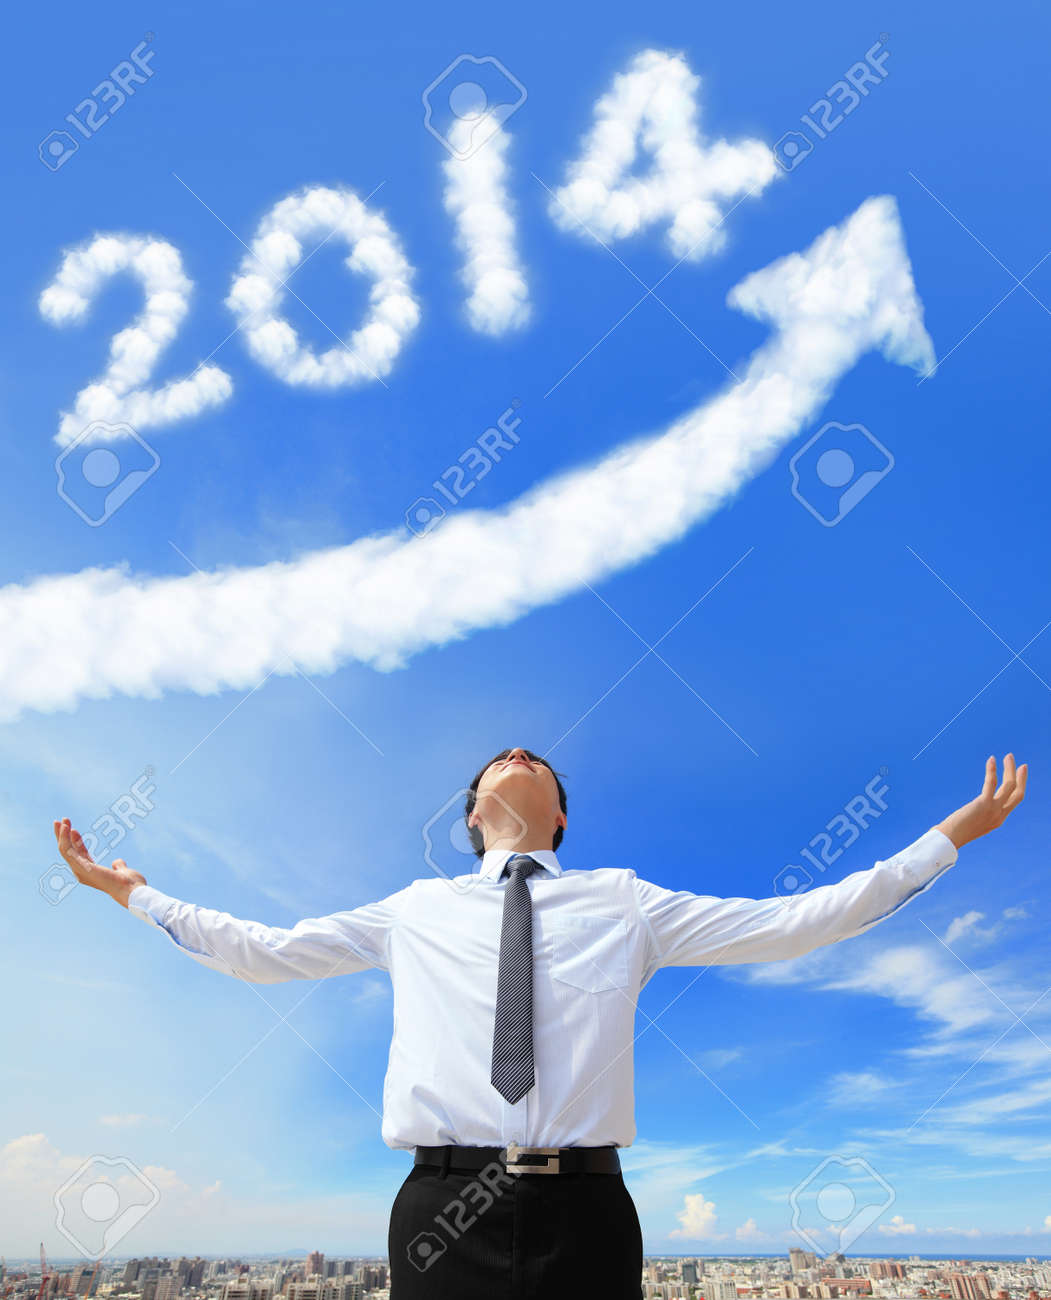 happy new year 2014, Business man hug 2014 (white cloud and blue sky on sunny day) Stock Photo - 21232761